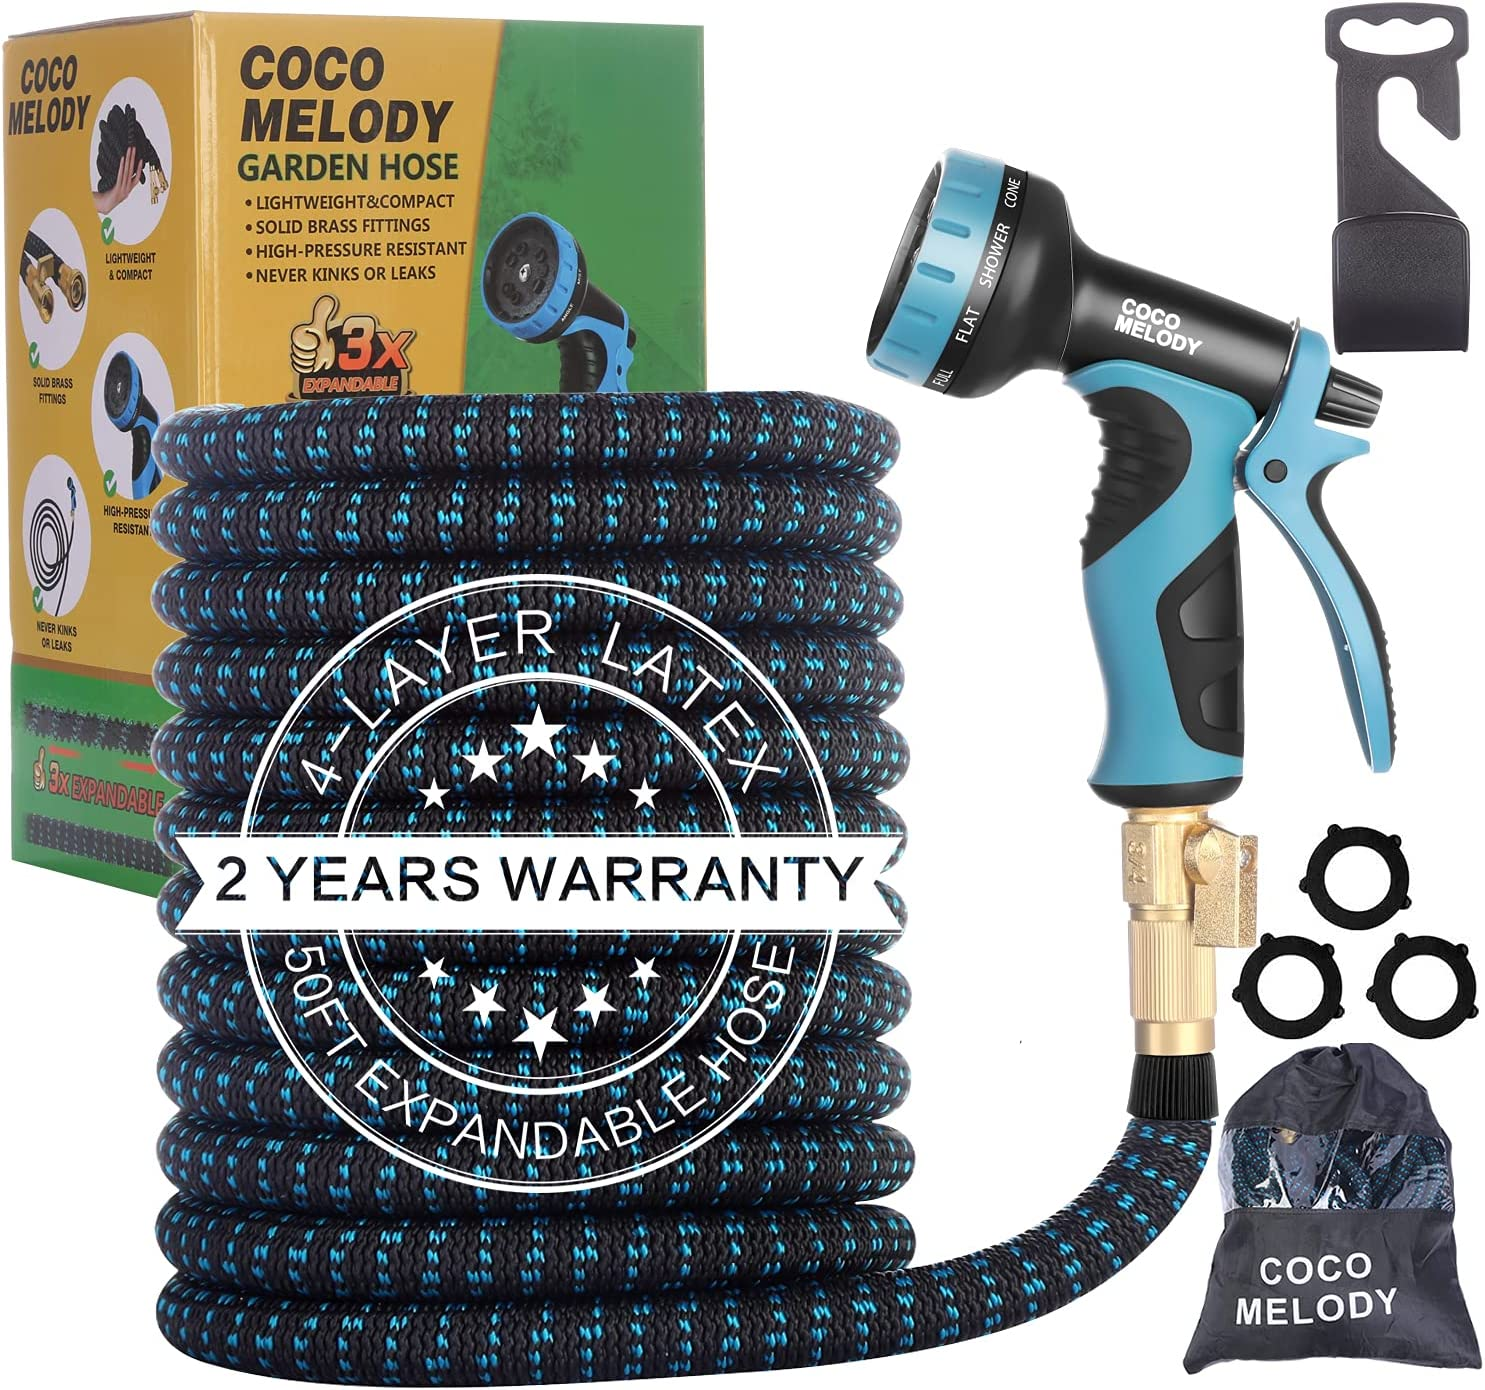 50FT Expandable Garden Hose, Flexible Water Hose with 10-Pattern Spray Nozzle, Leak-proof Retractable Heavy Duty Hose, 4-layer Latex , Durable 3750D, 3/4 Solid Brass Connectors, No-Kink, lightweight